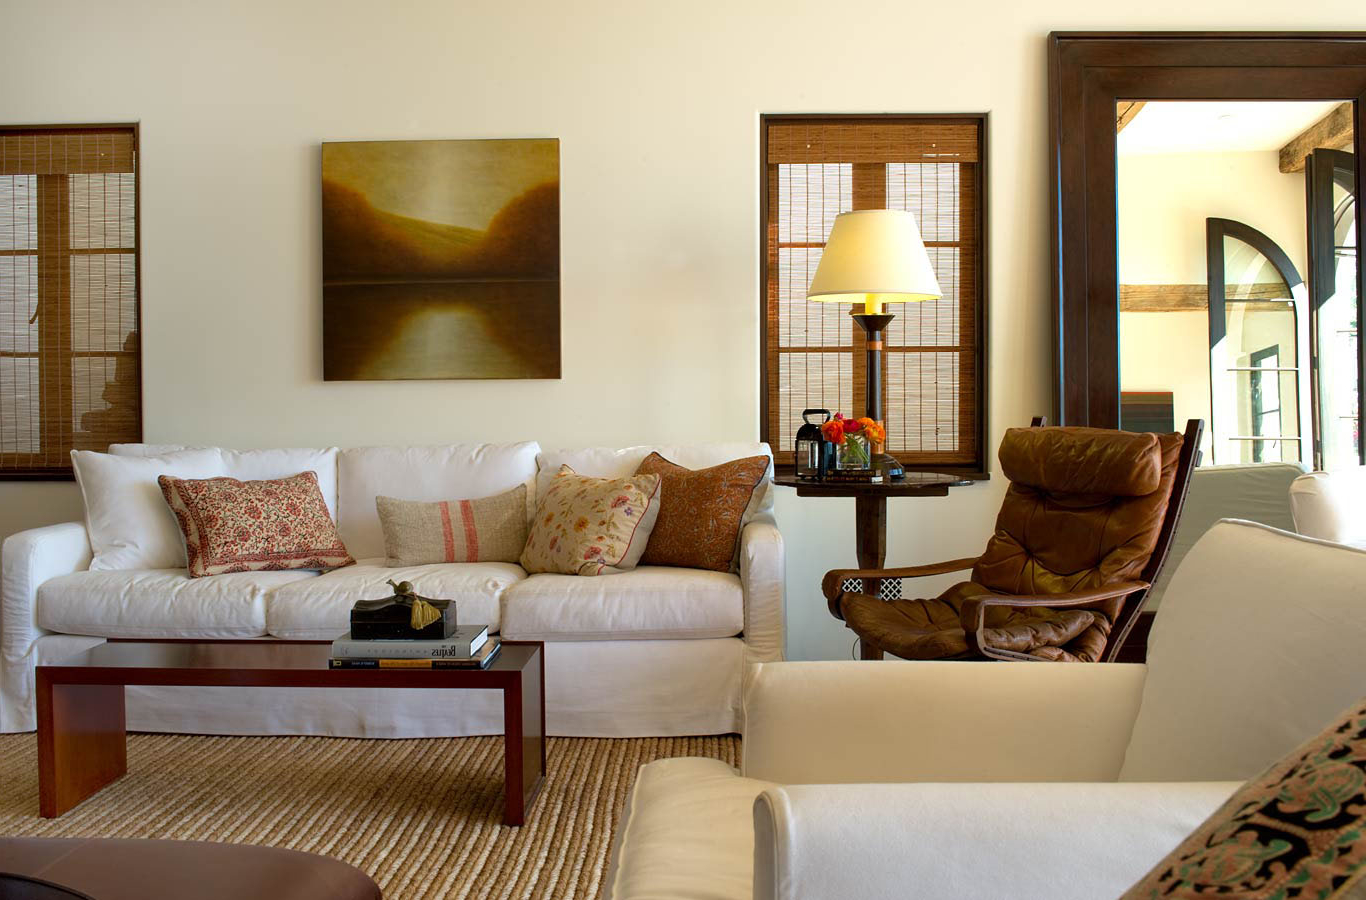 Featured Image of Oriental Atmosphere American Living Room Design